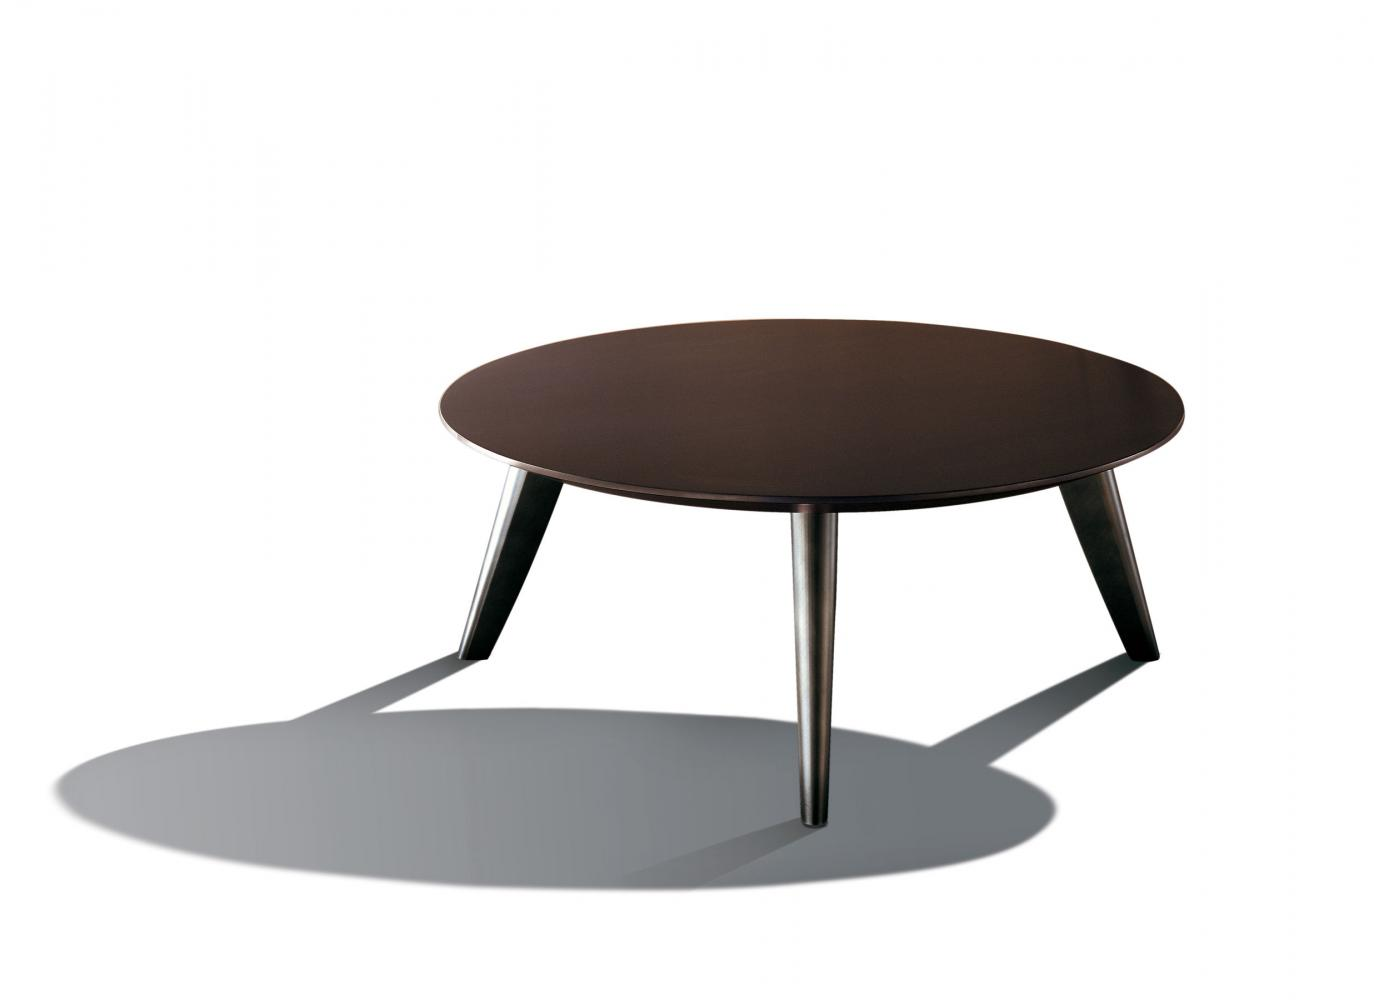 Modern luxury round table with wooden top and bronze legs